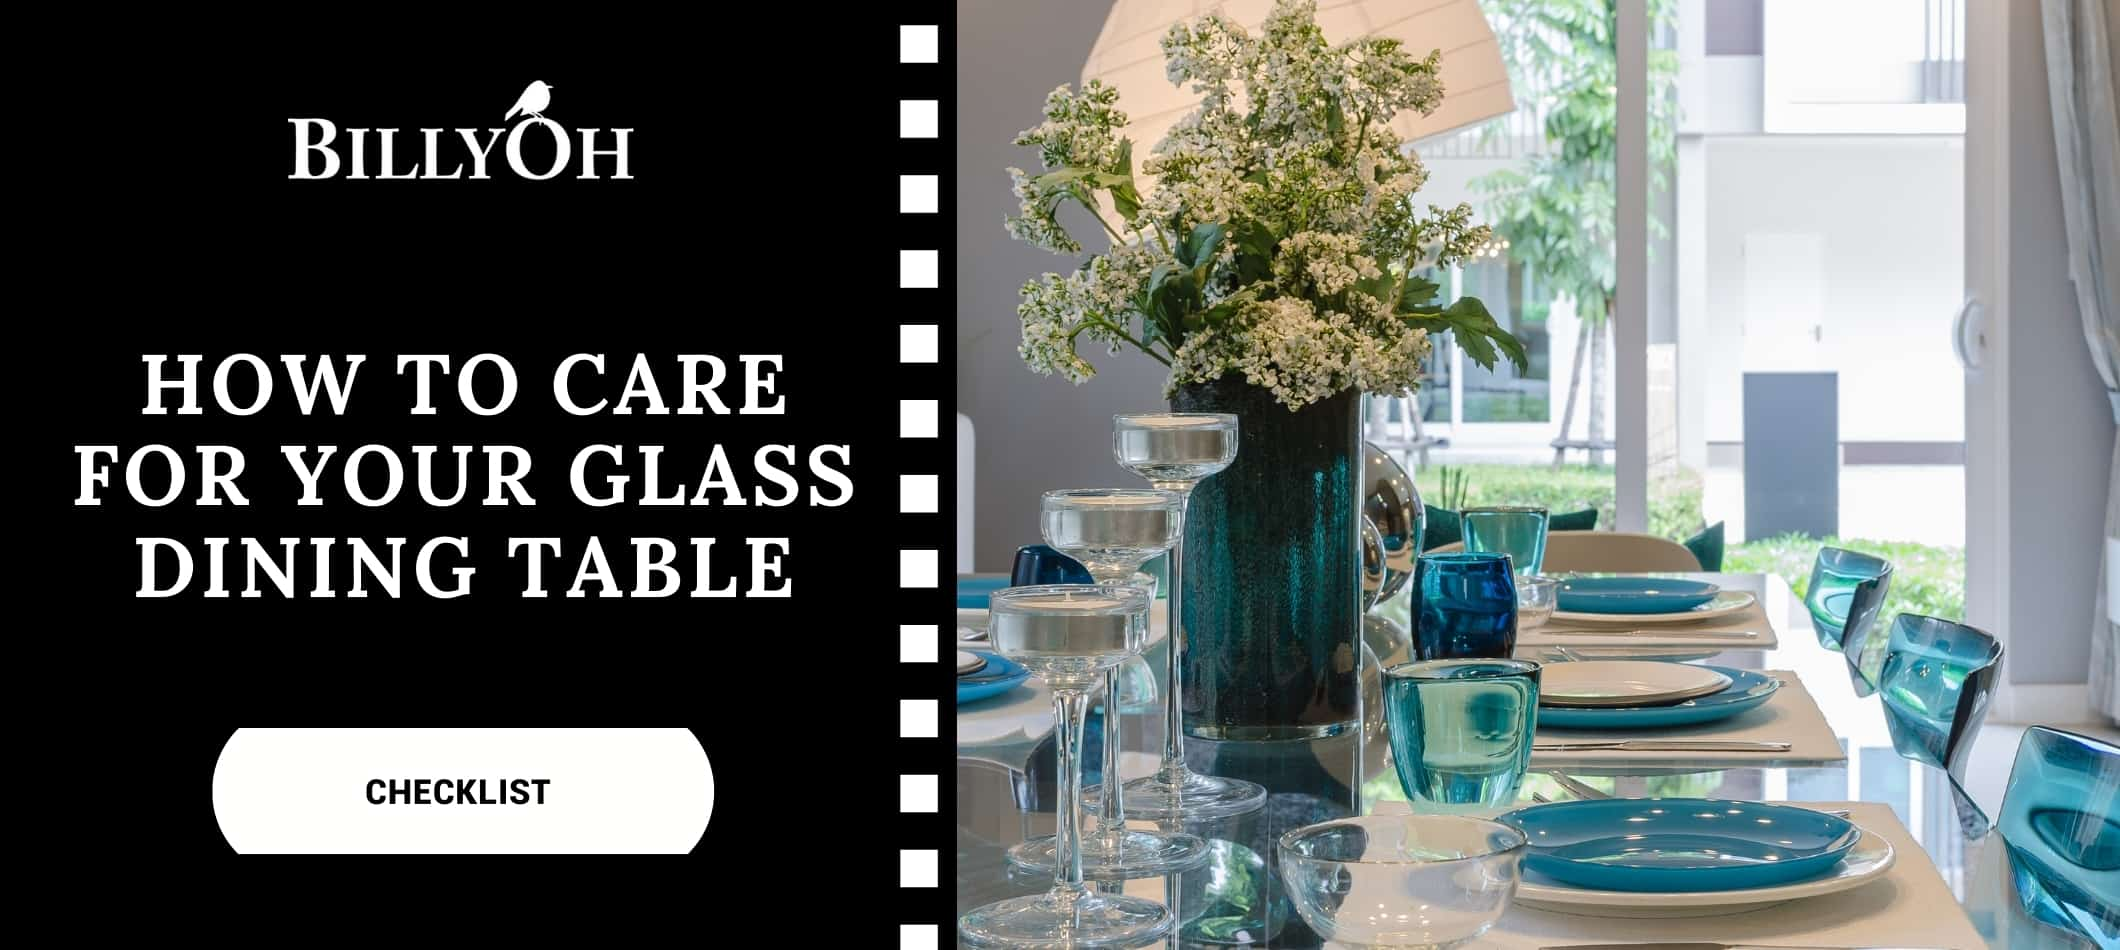 Glass dining table with glasses and vase with BillyOh logo and white and black cartoon film reel banner